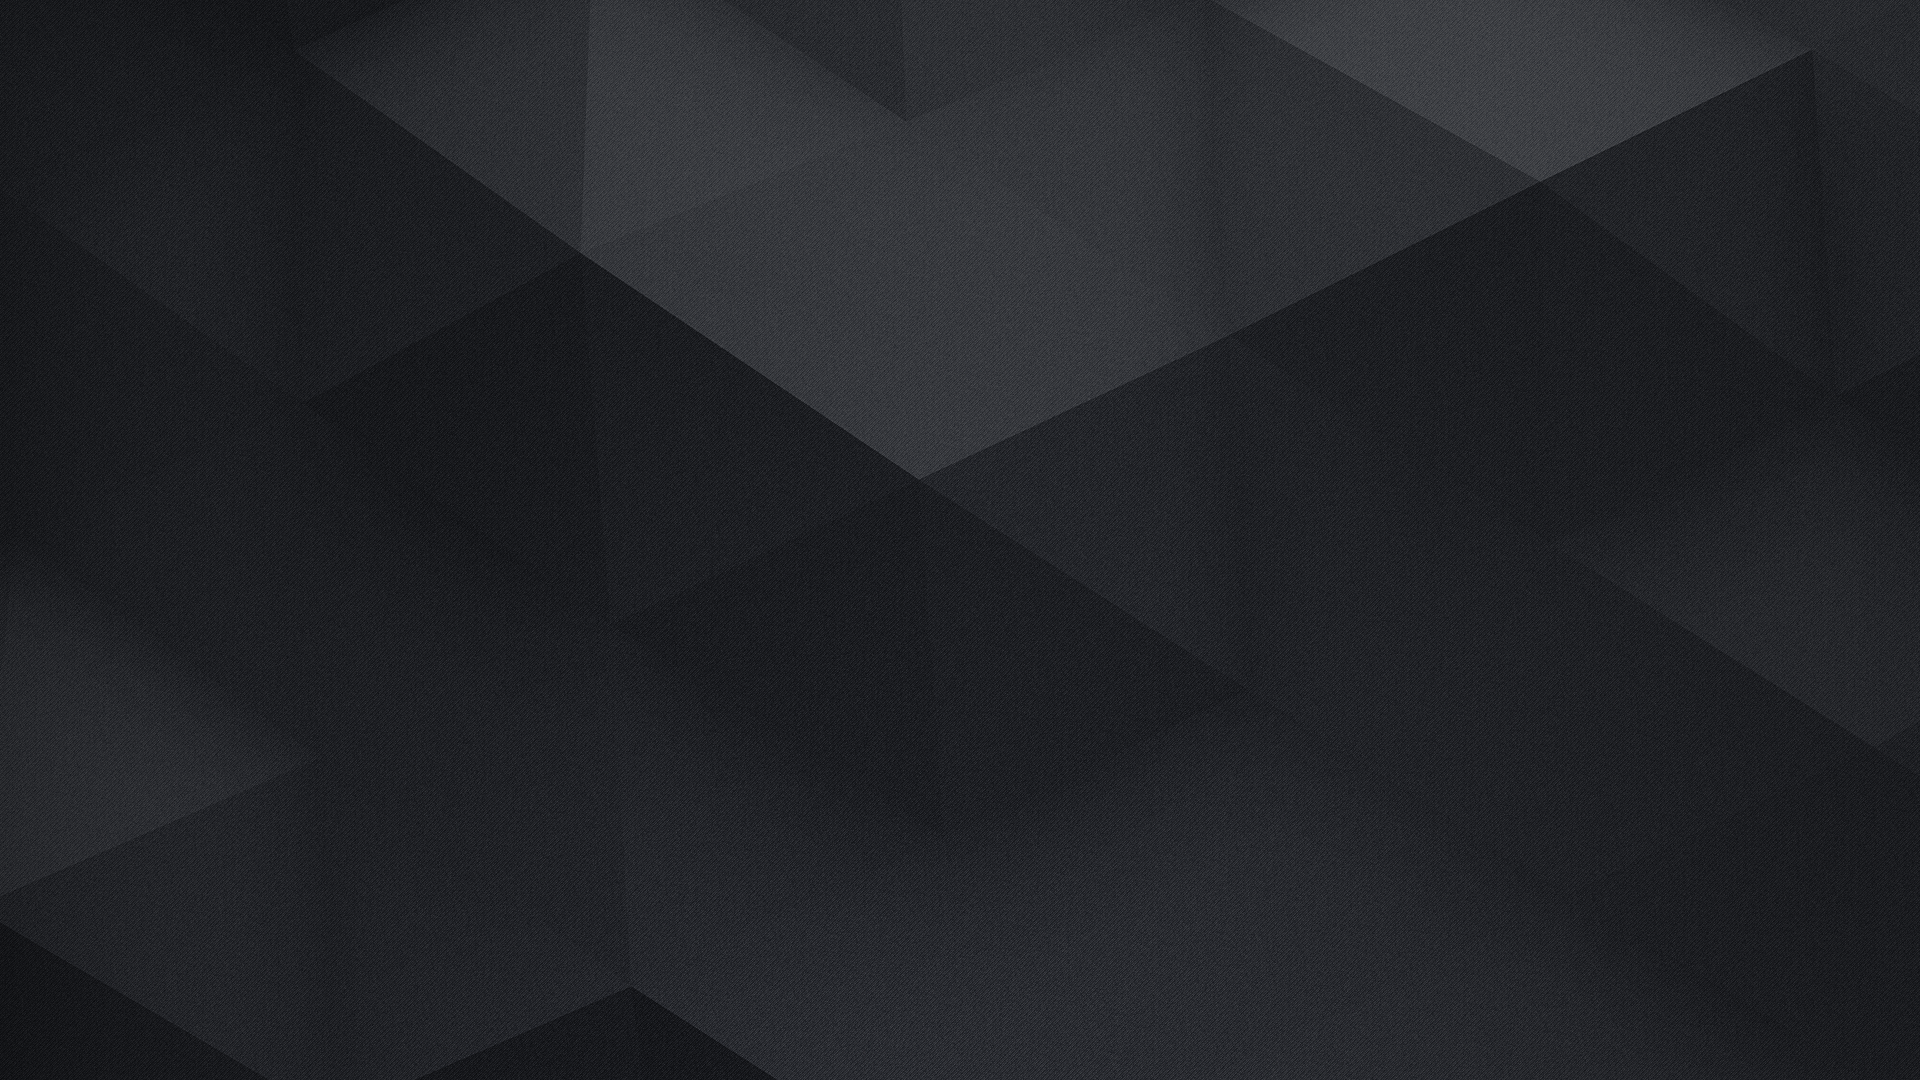 Abstract Minimalist Black Wallpapers